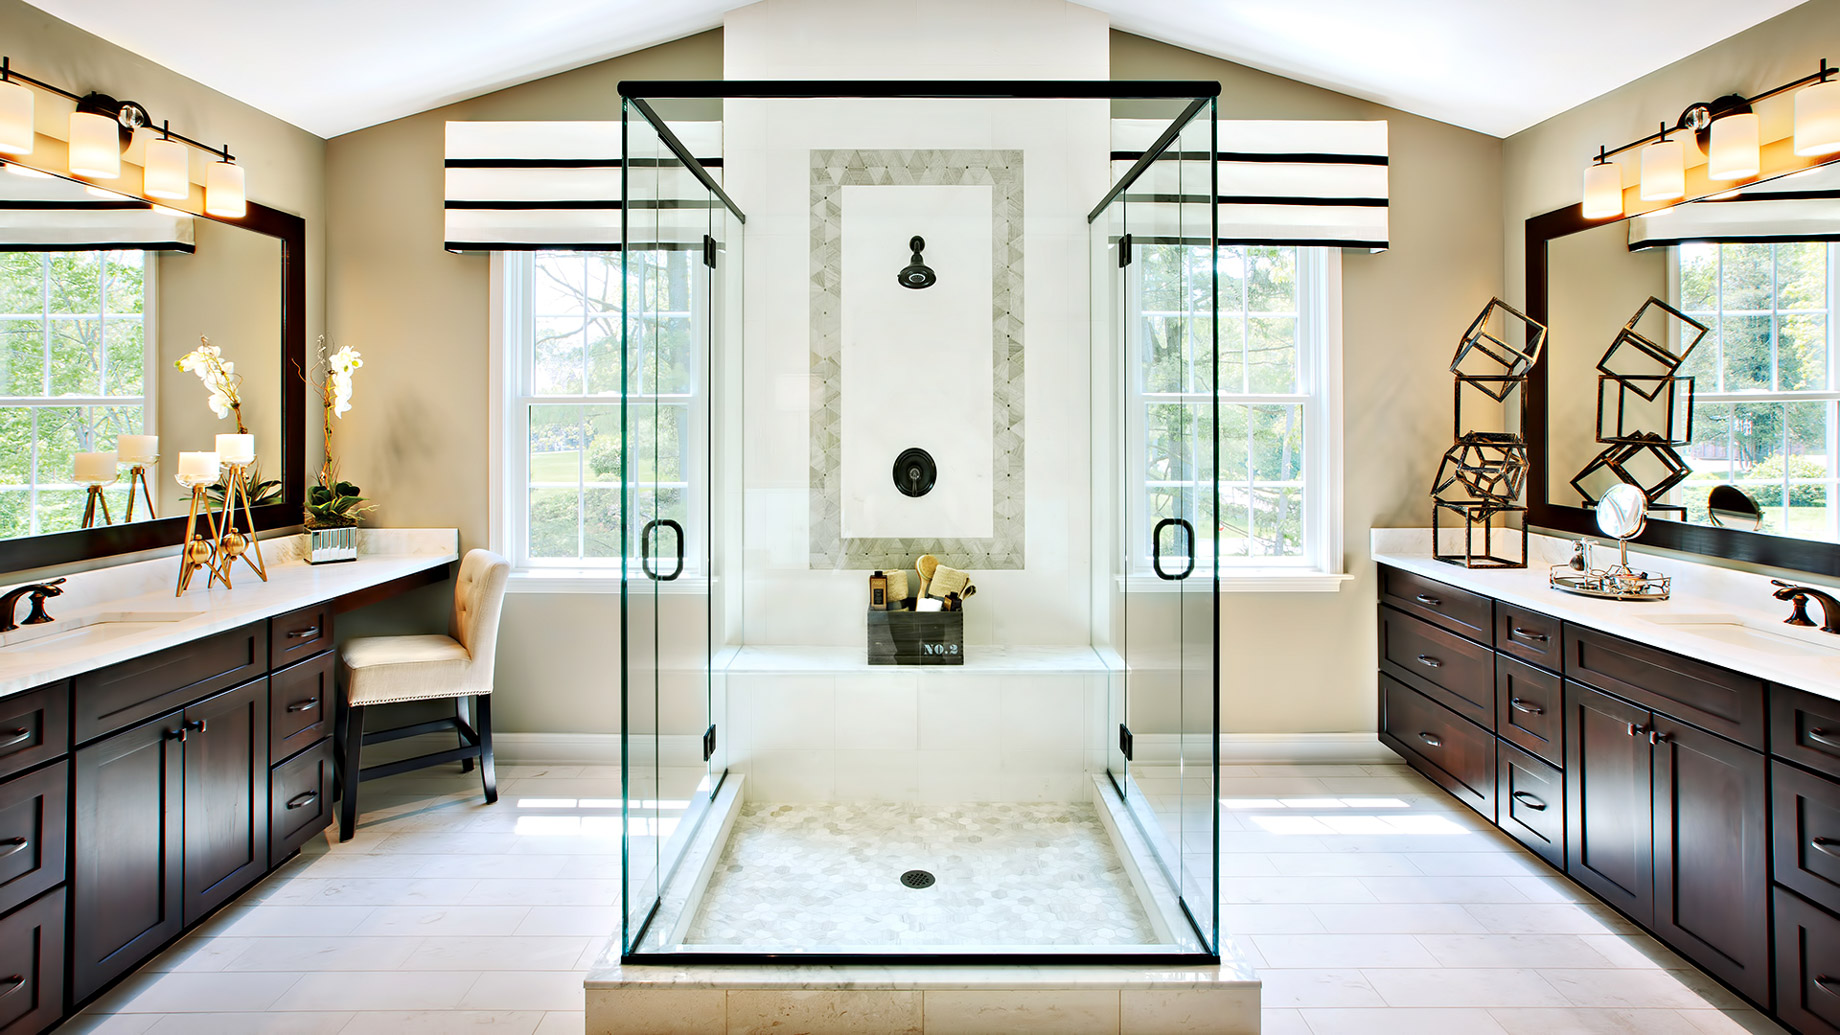 Always Go the Extra Mile for Luxury - Top 4 Rules to Consider for a Luxury Bathroom Renovation